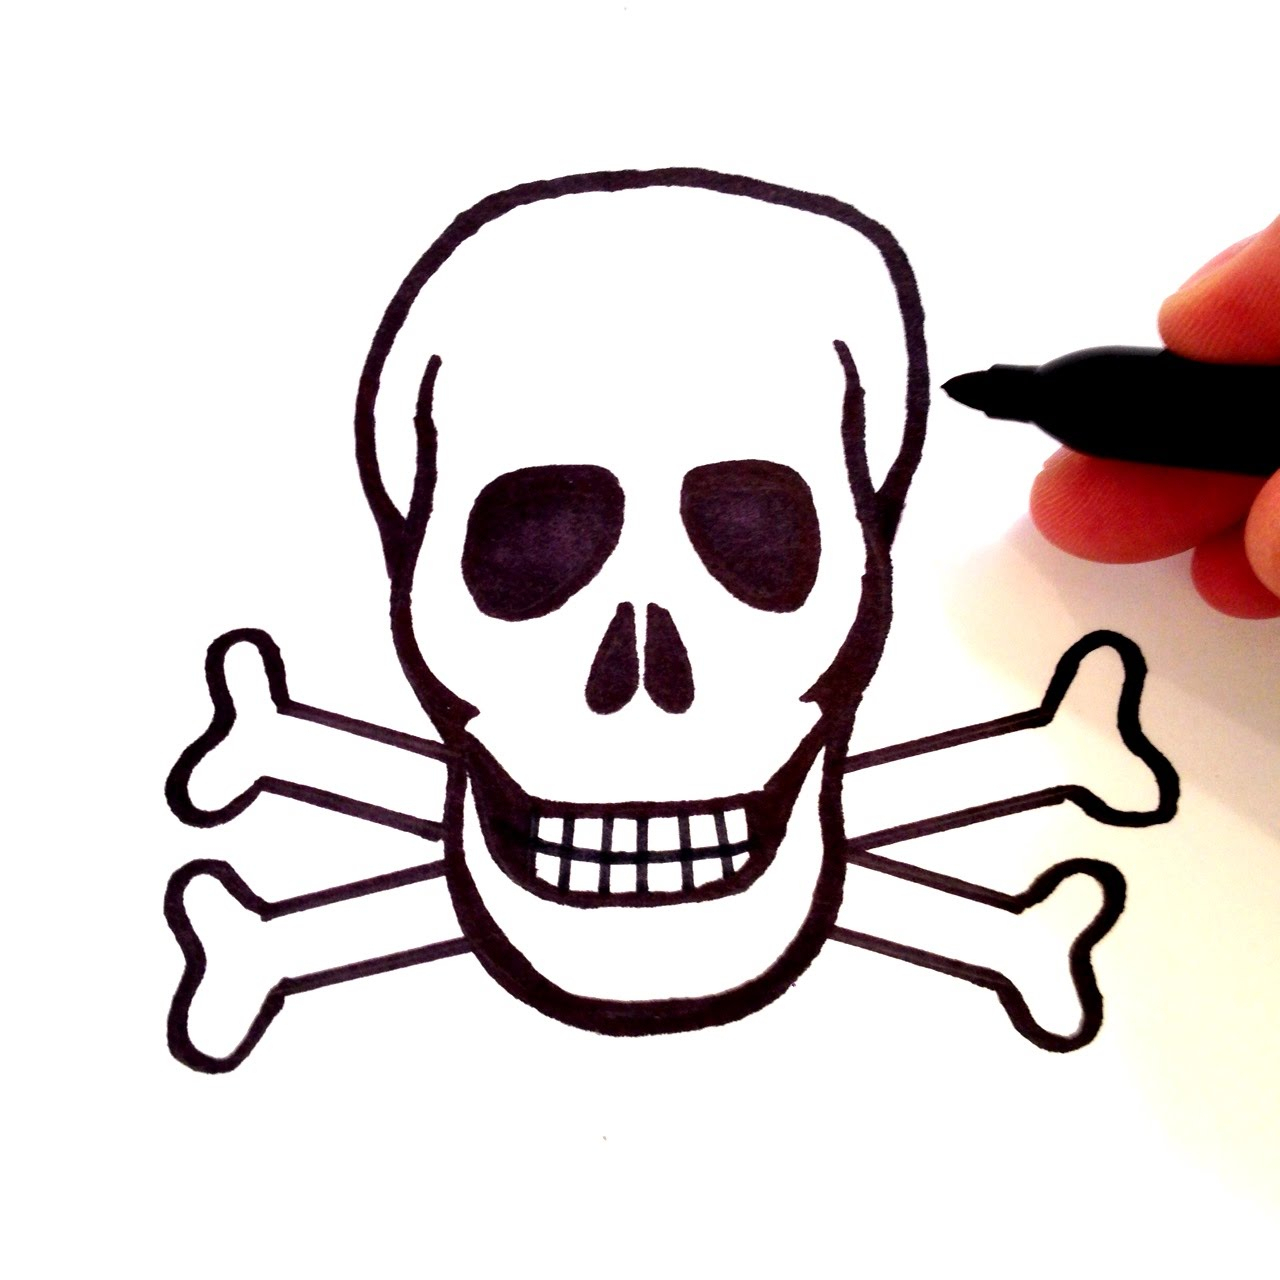 1280x1280 Skull And Crossbones Drawing How To Draw A Skull With Crossbones